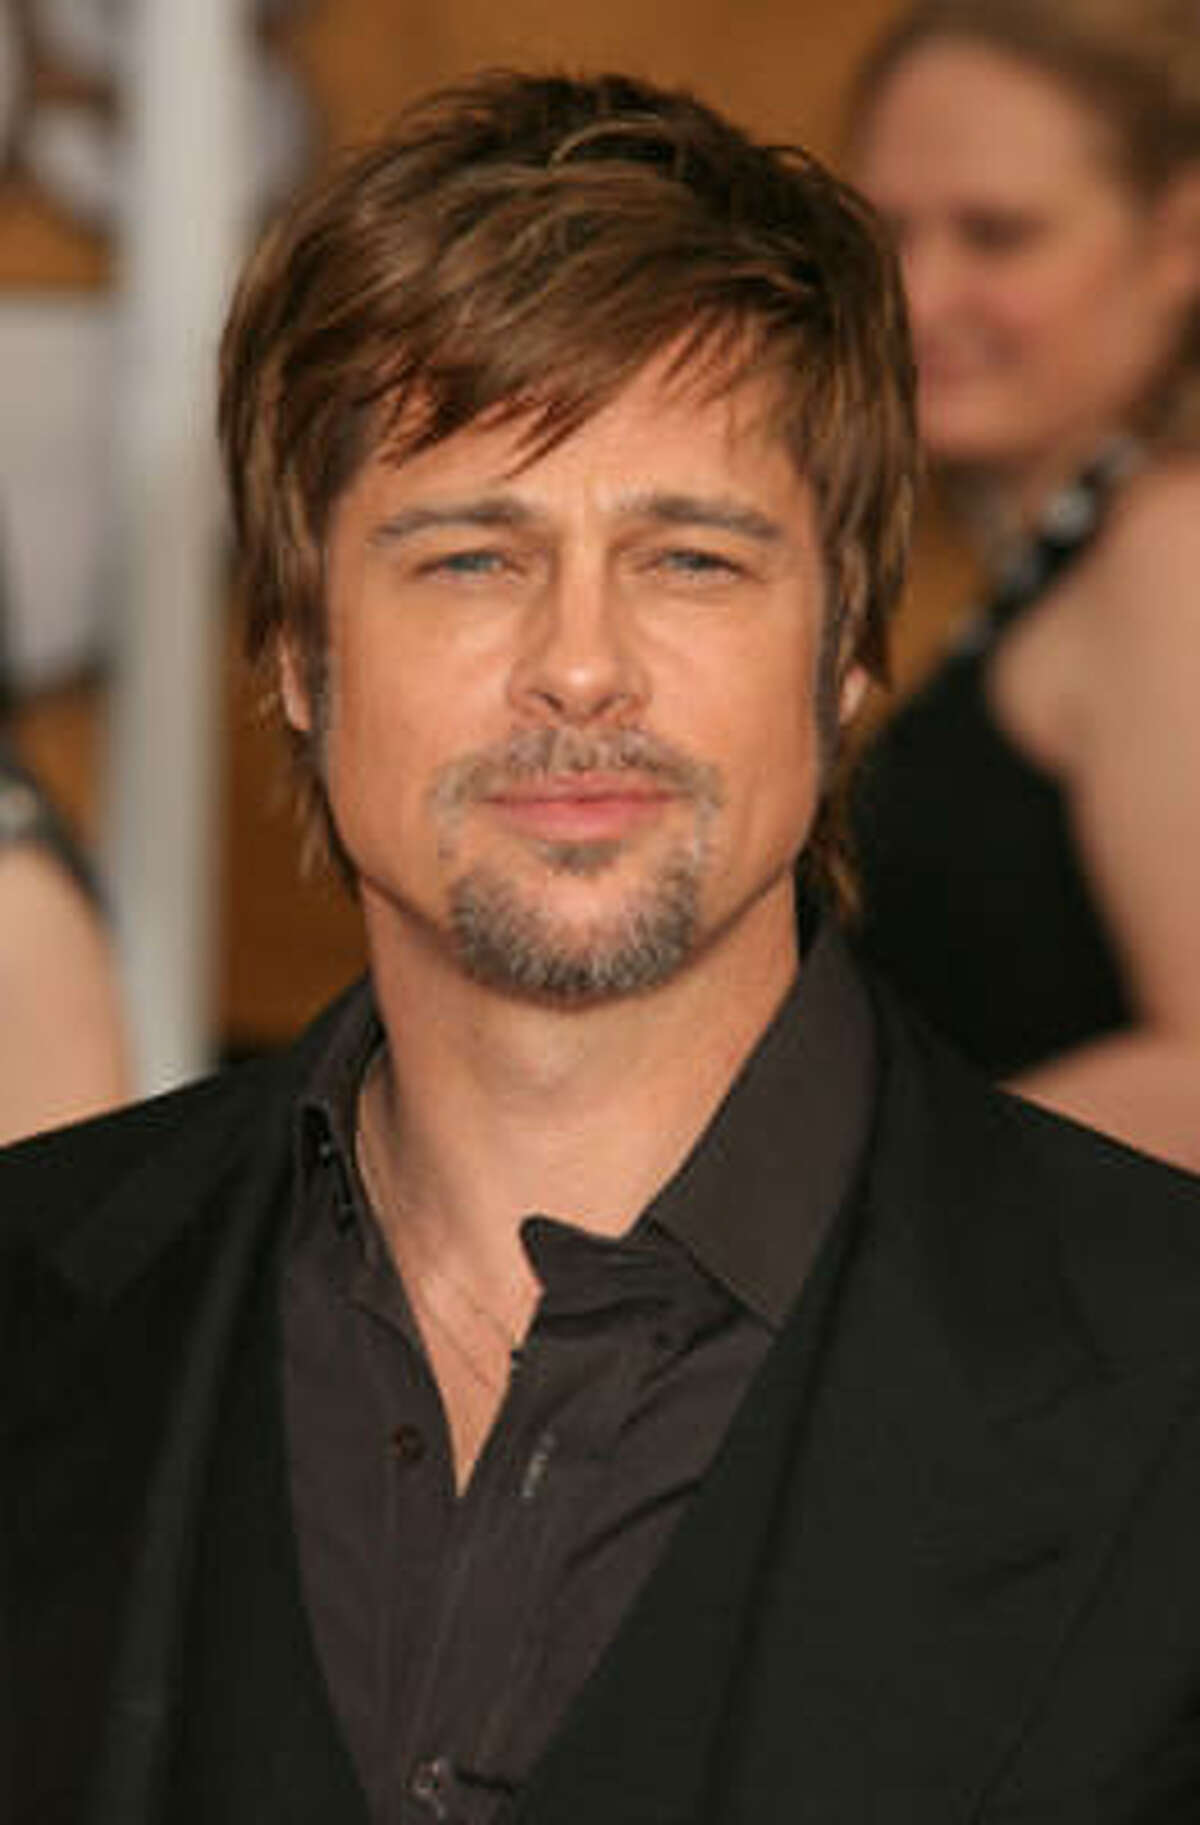 Leave it to Brad Pitt to find an incredibly manly way to rock bangs, by simply pairing with a sexy salt-and-pepper goatee. Angelina Jolie must love that.